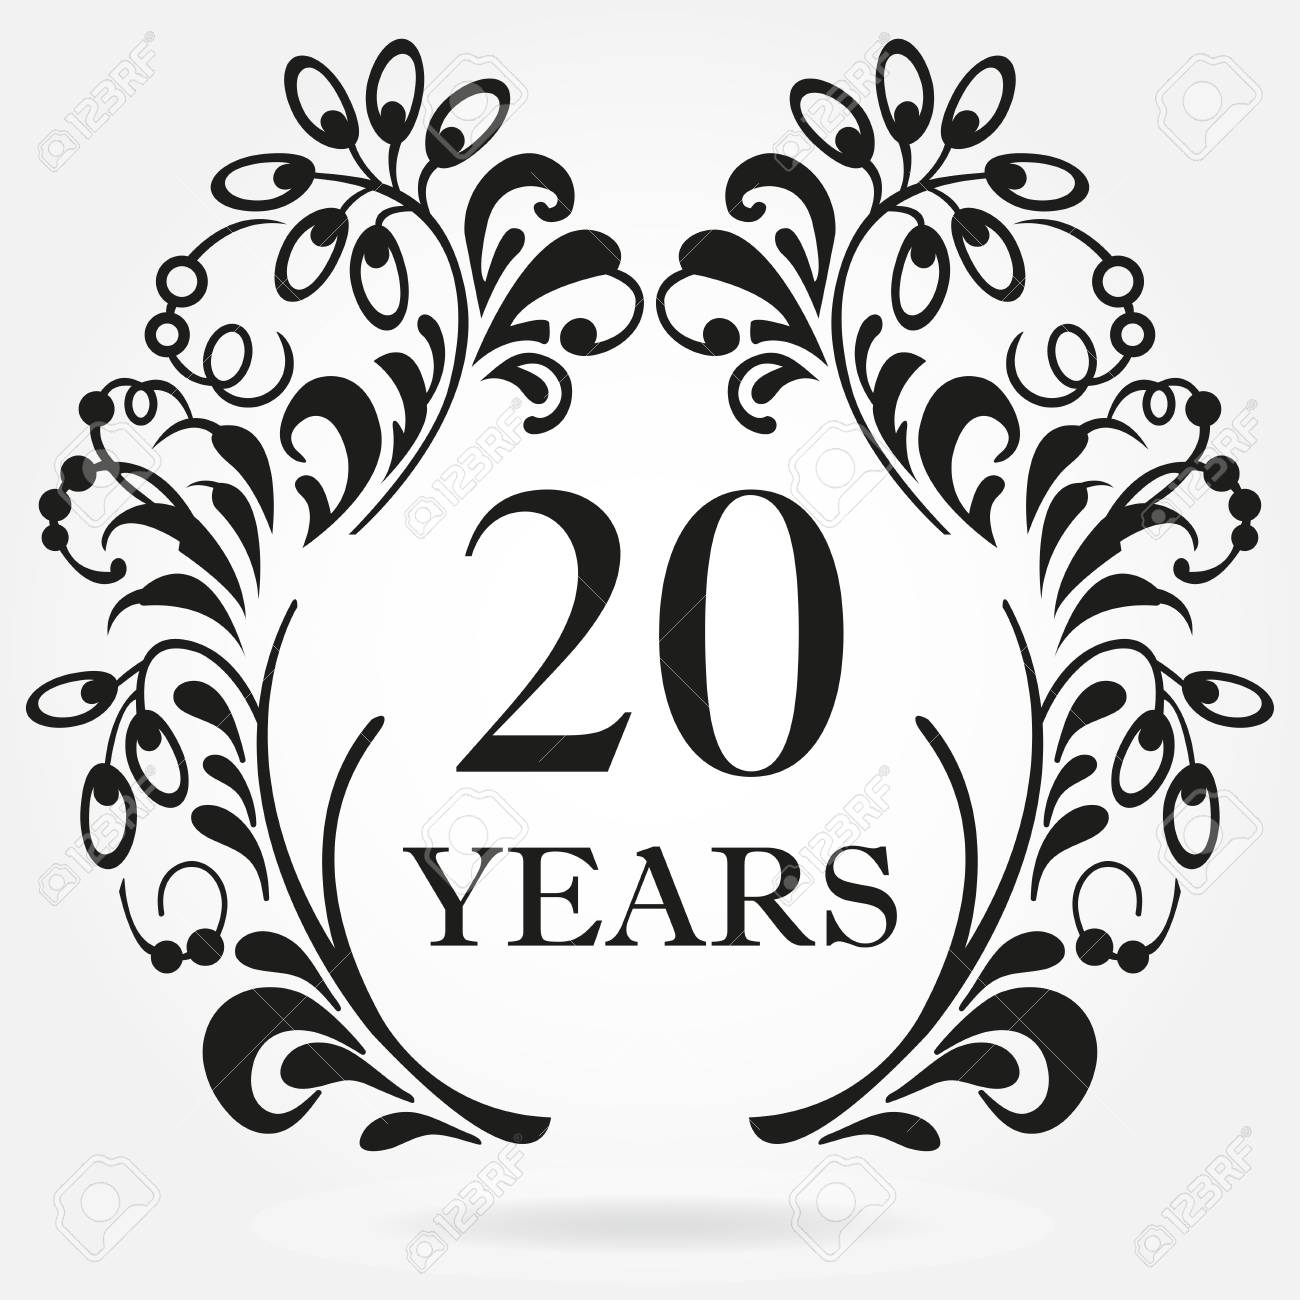 20 Years Anniversary Icon In Ornate Frame With Floral Elements Royalty Free Cliparts Vectors And Stock Illustration Image 97305434